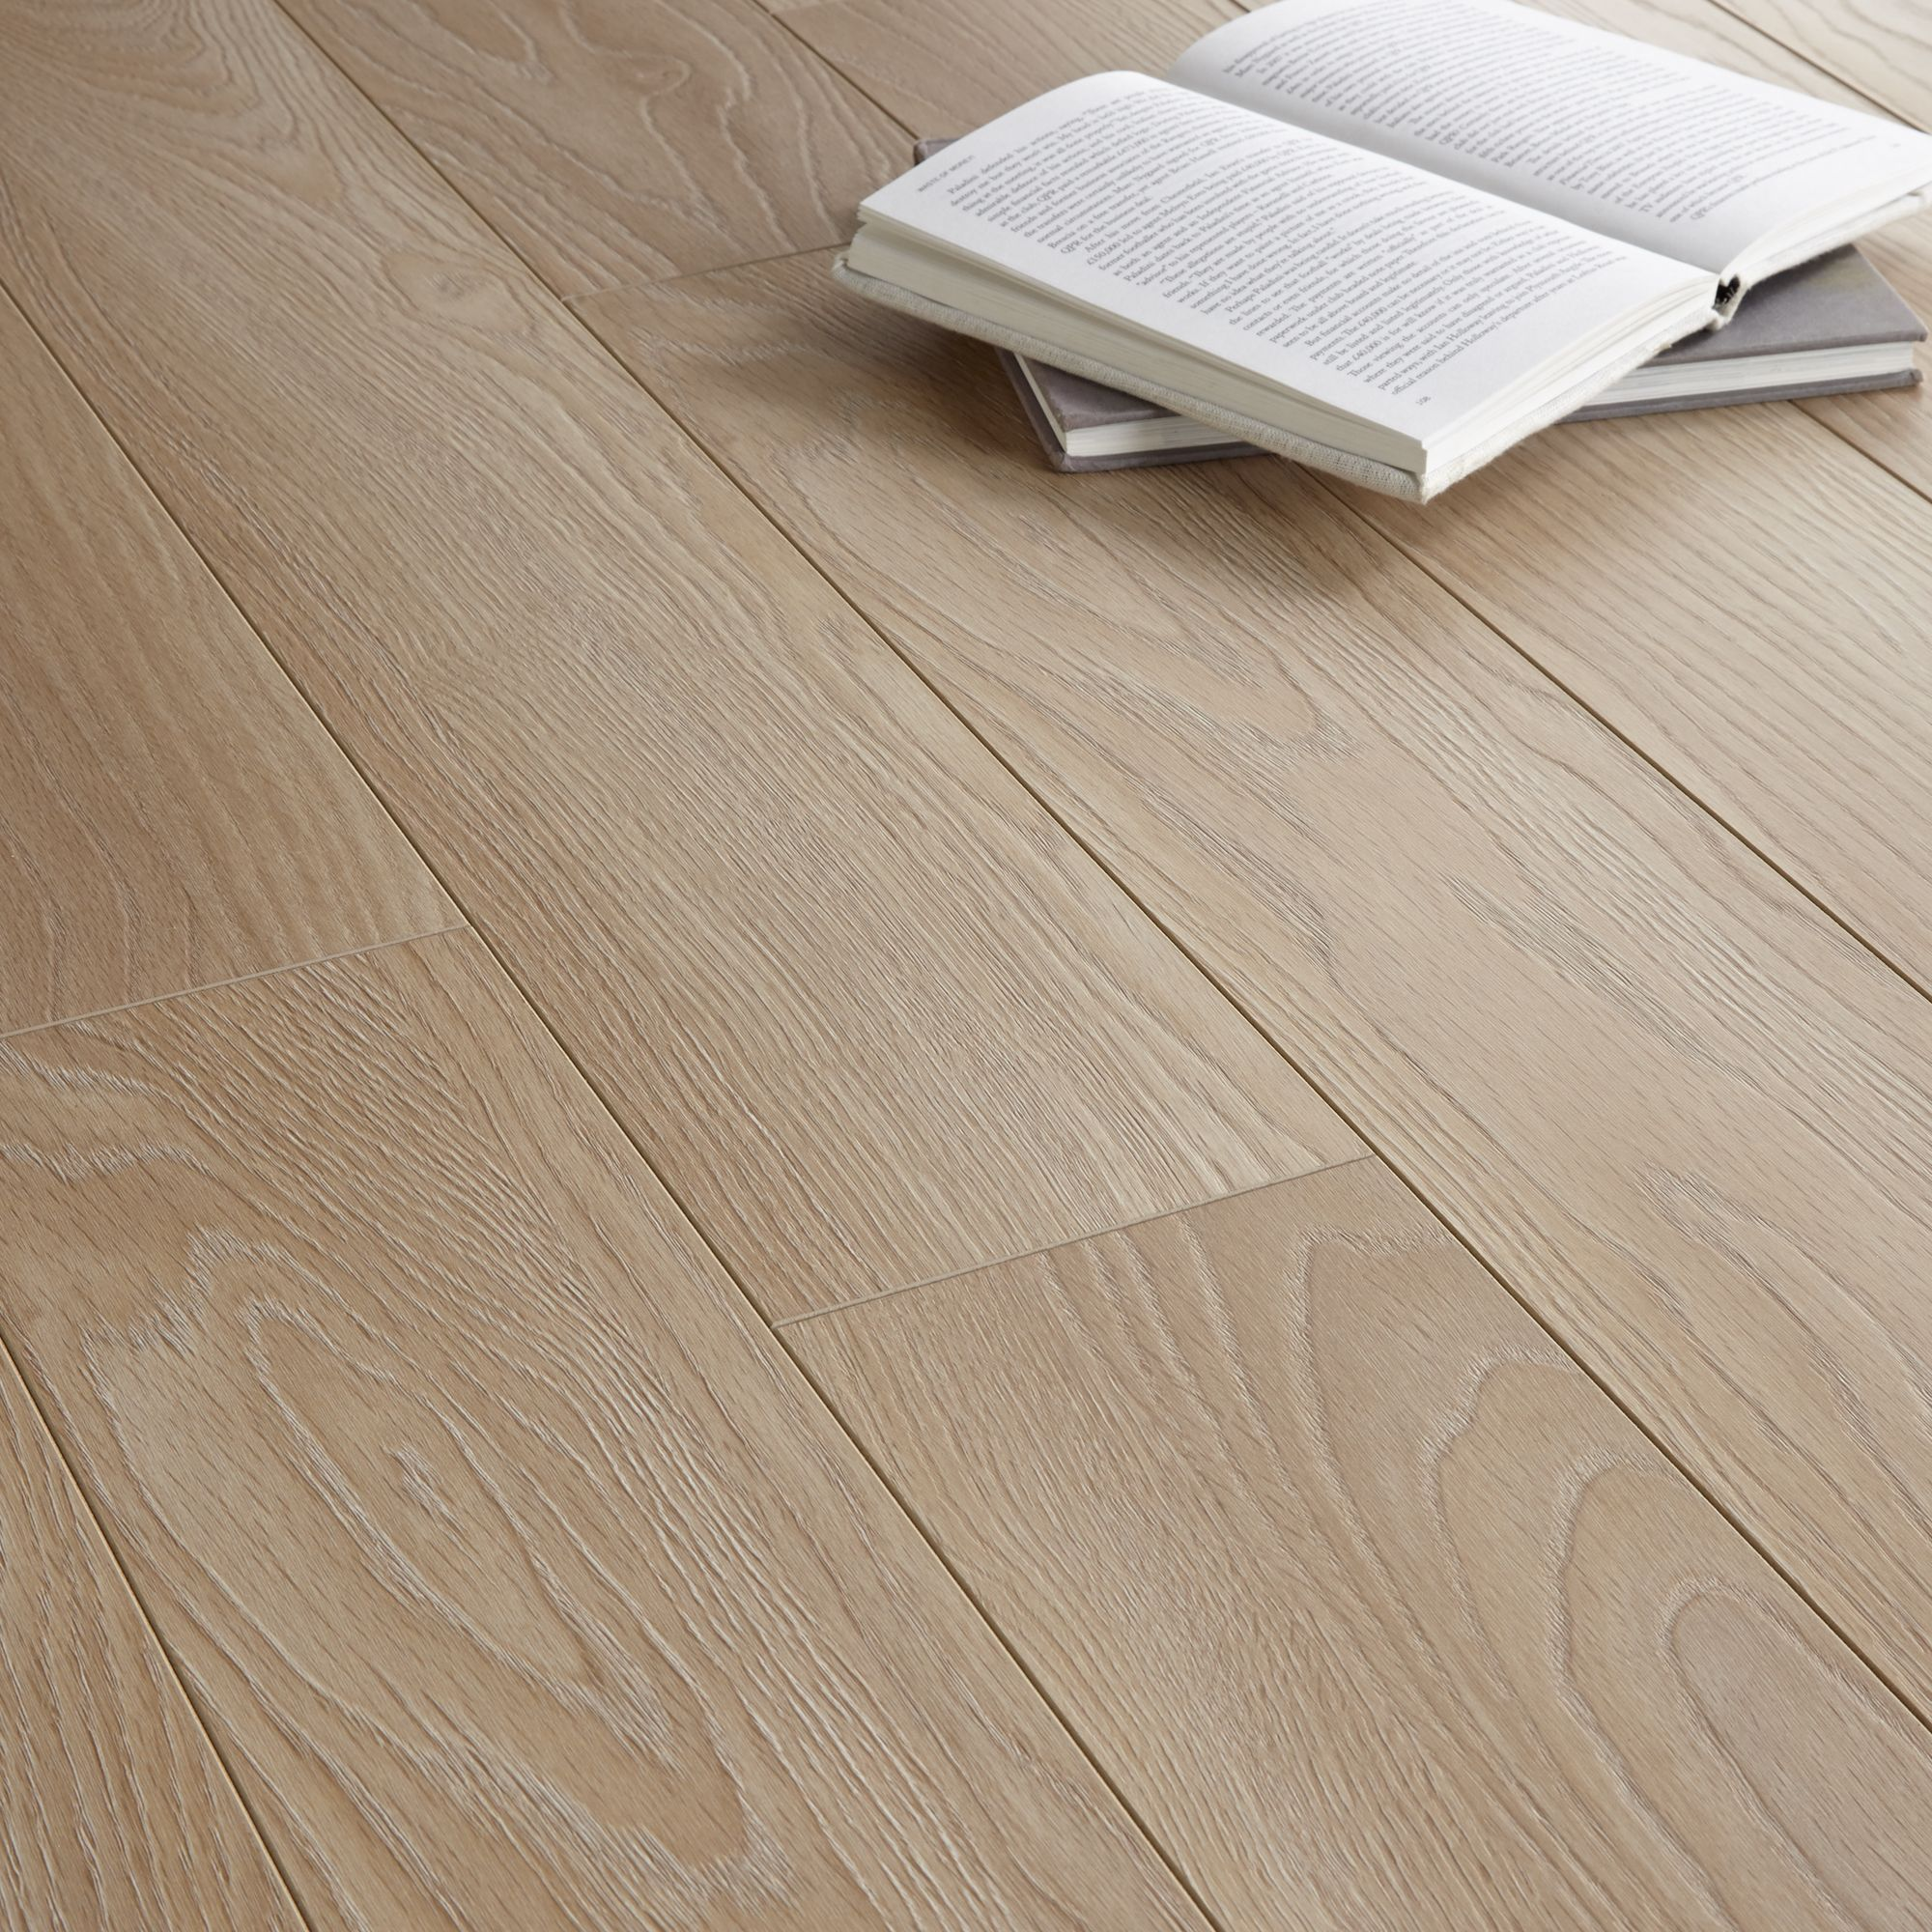 Toccata Natural Cardiff Oak Effect Laminate Flooring 1 65 M² Pack